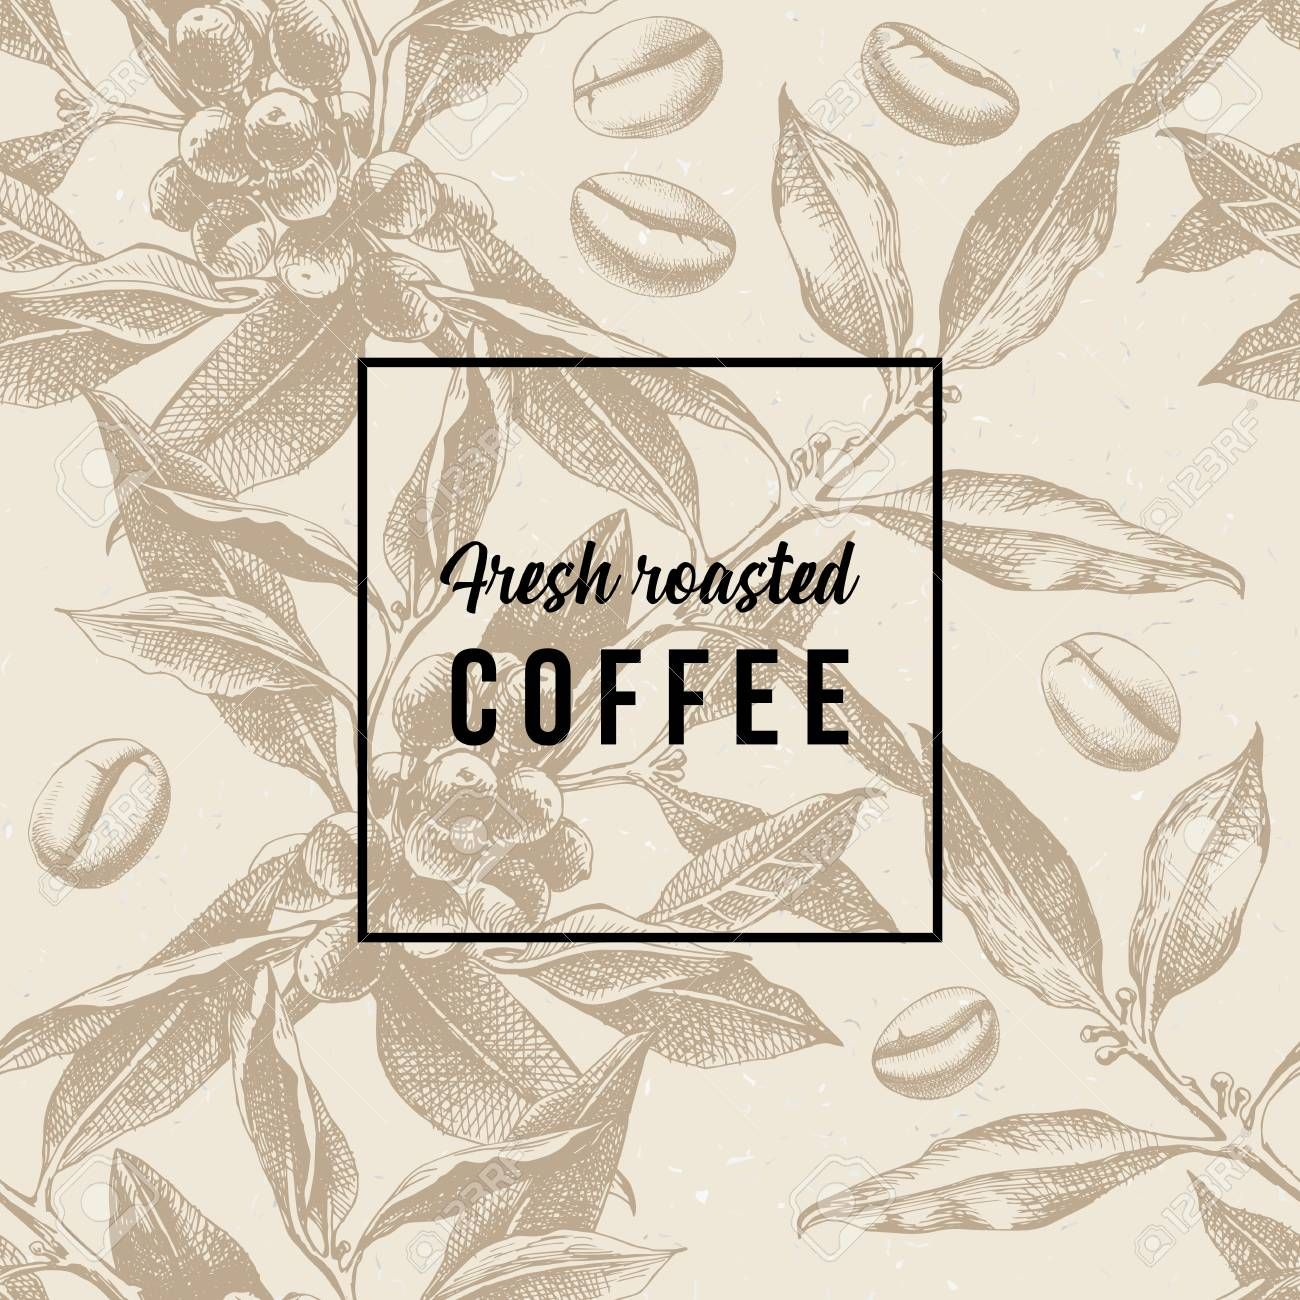 Seamles pattern with coffee plant, beans and type design